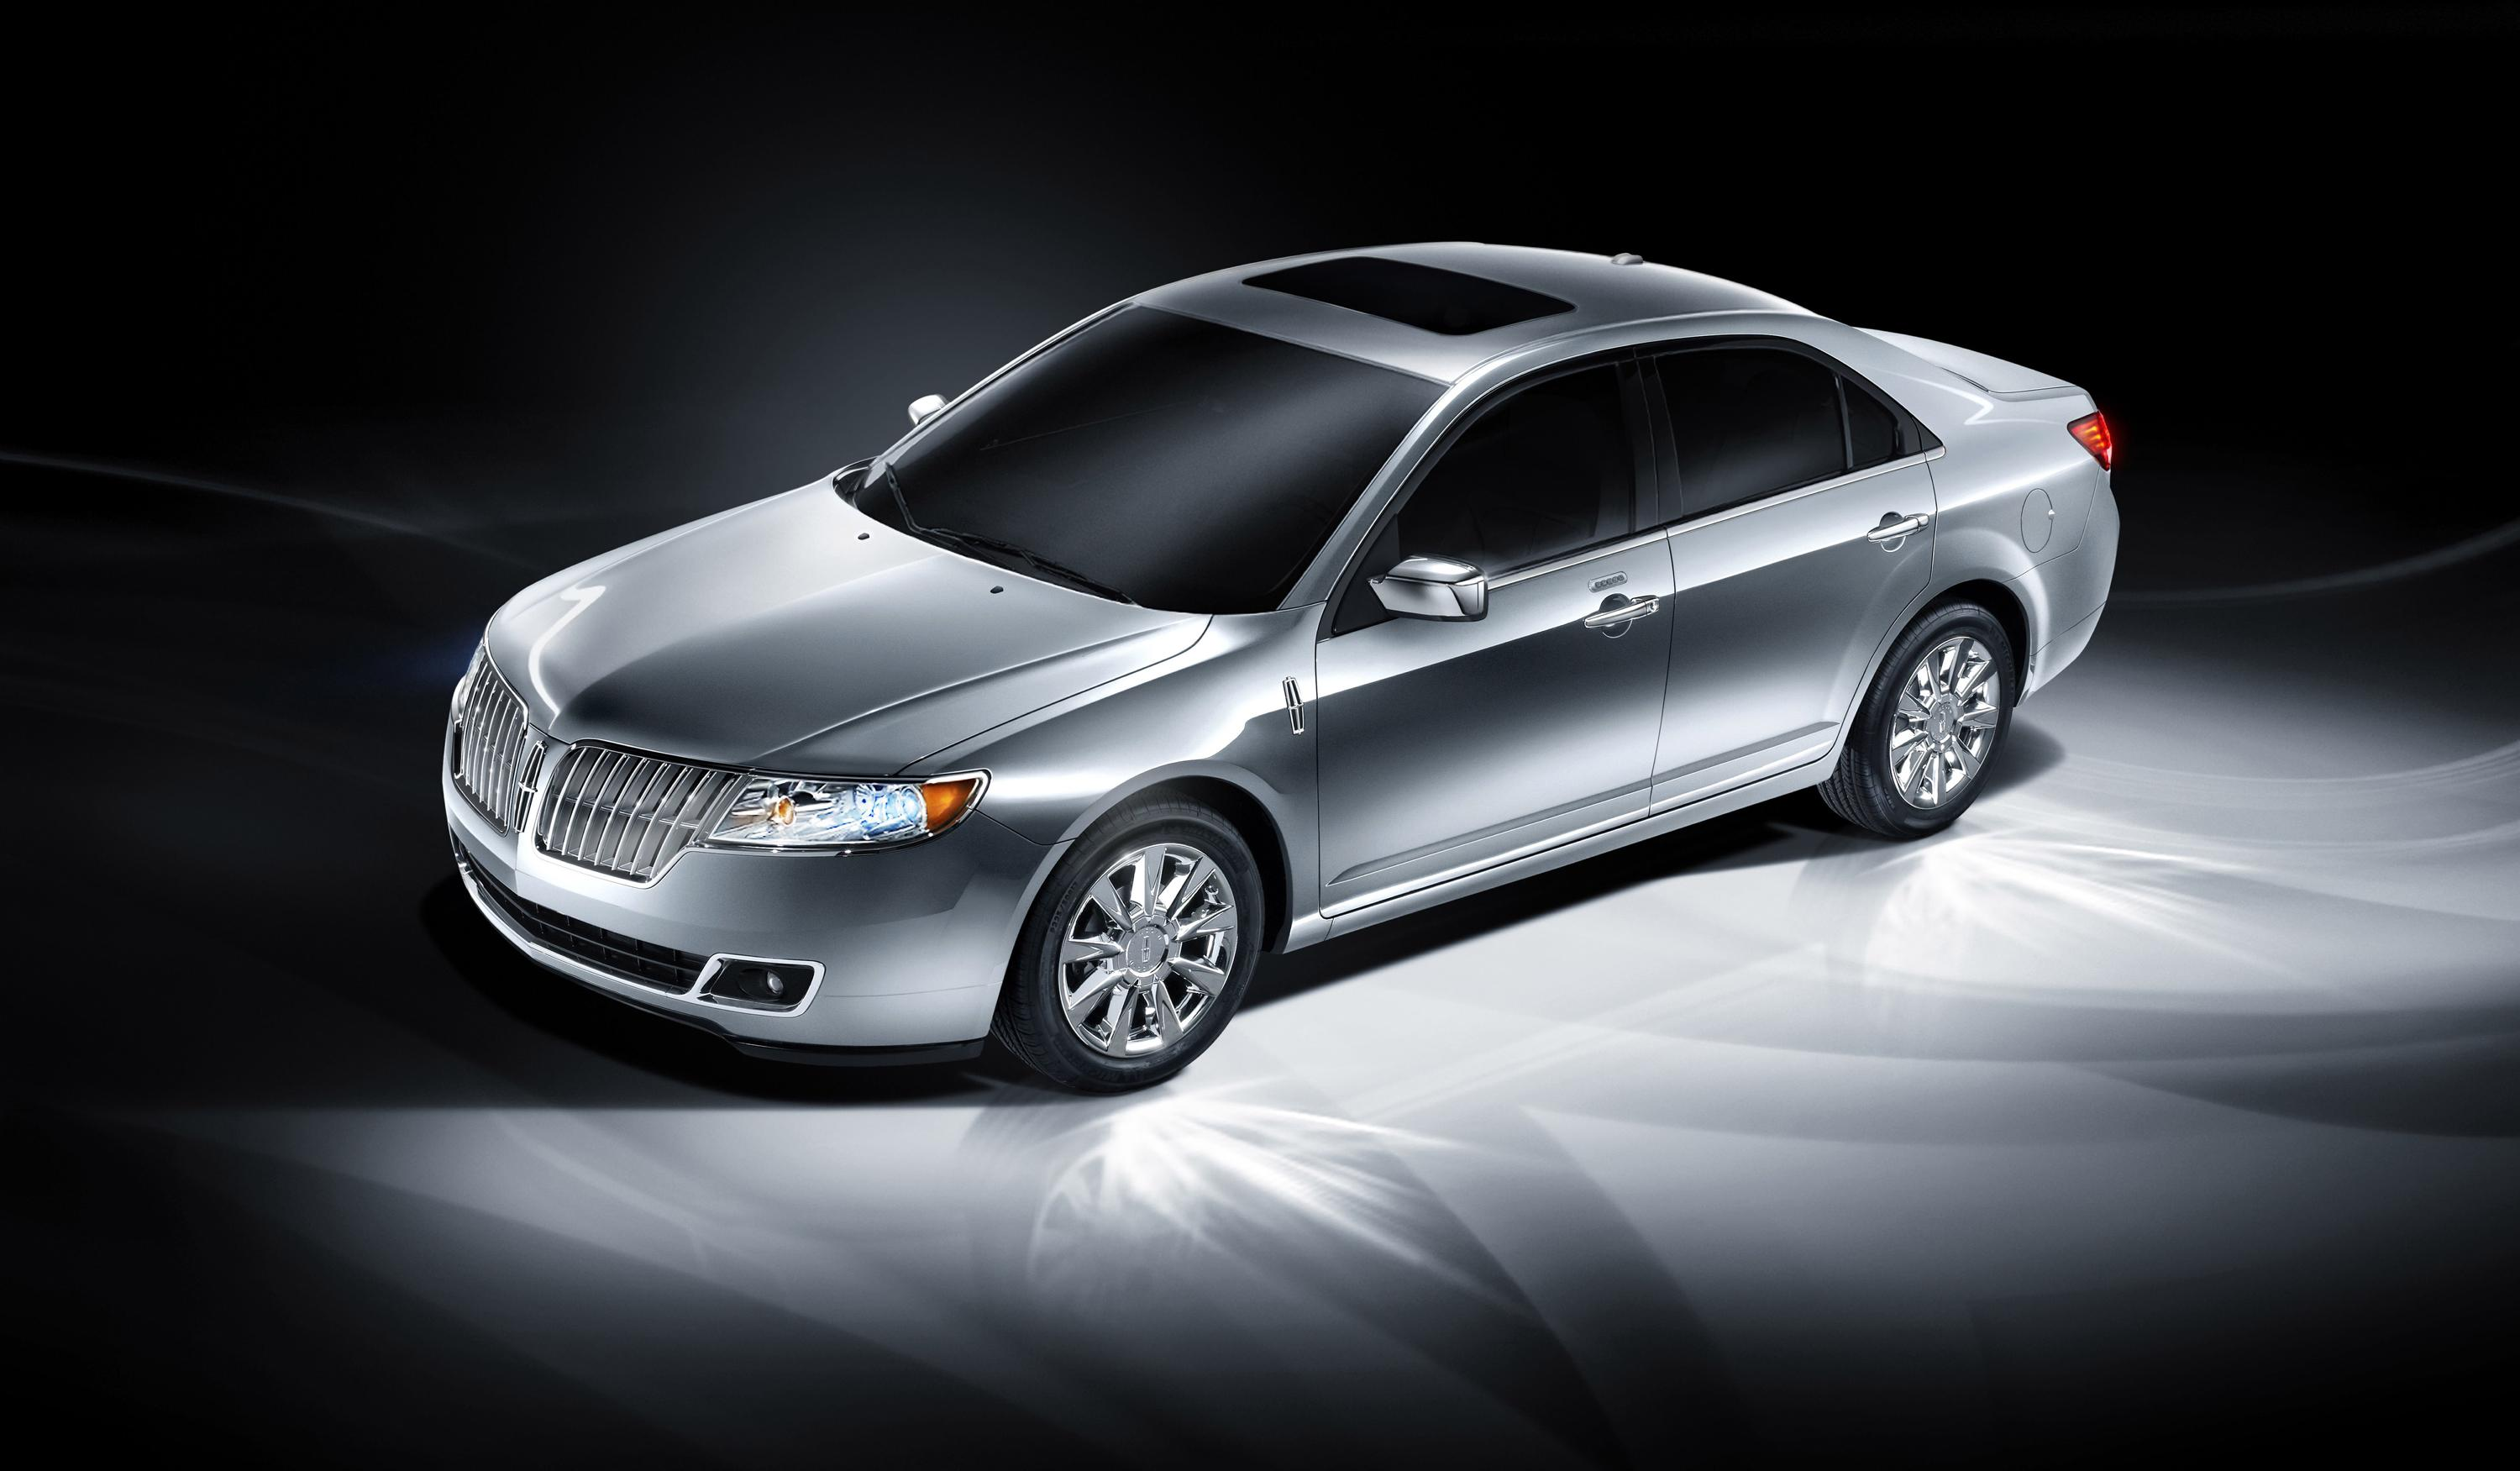 2010 Lincoln Mkz Top Speed